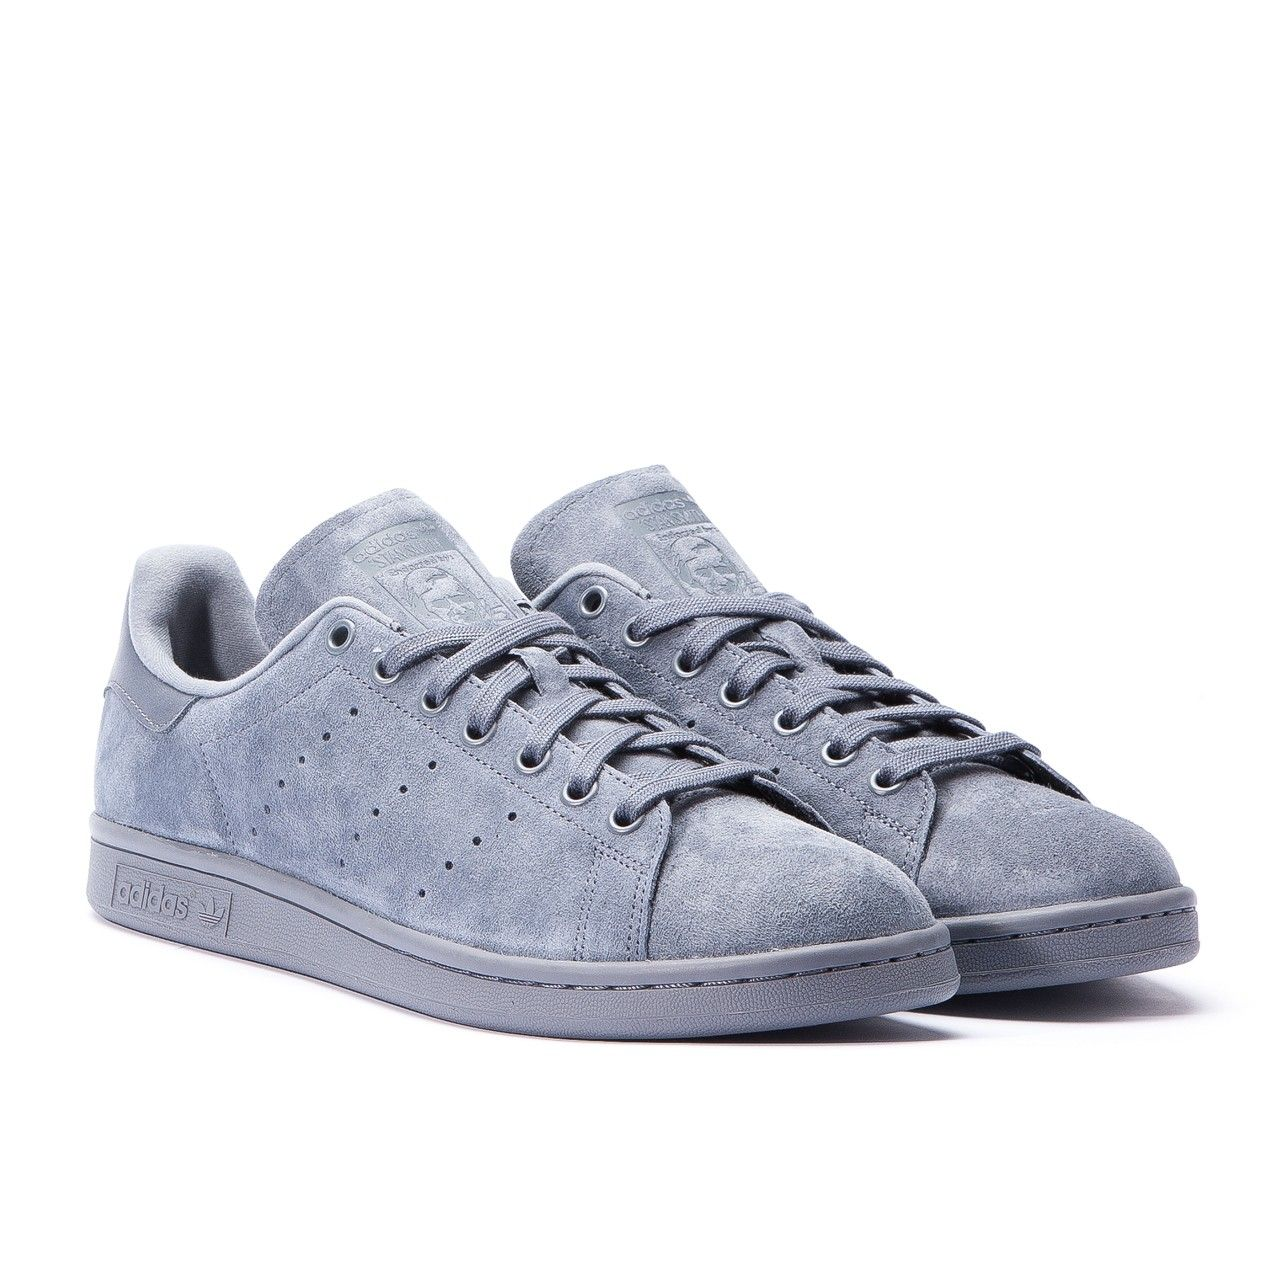 Order the adidas Stan Smith and many other Sneakers from a selection of  over 30 Sneaker brands at the Allike sneaker shop, world wide shipping